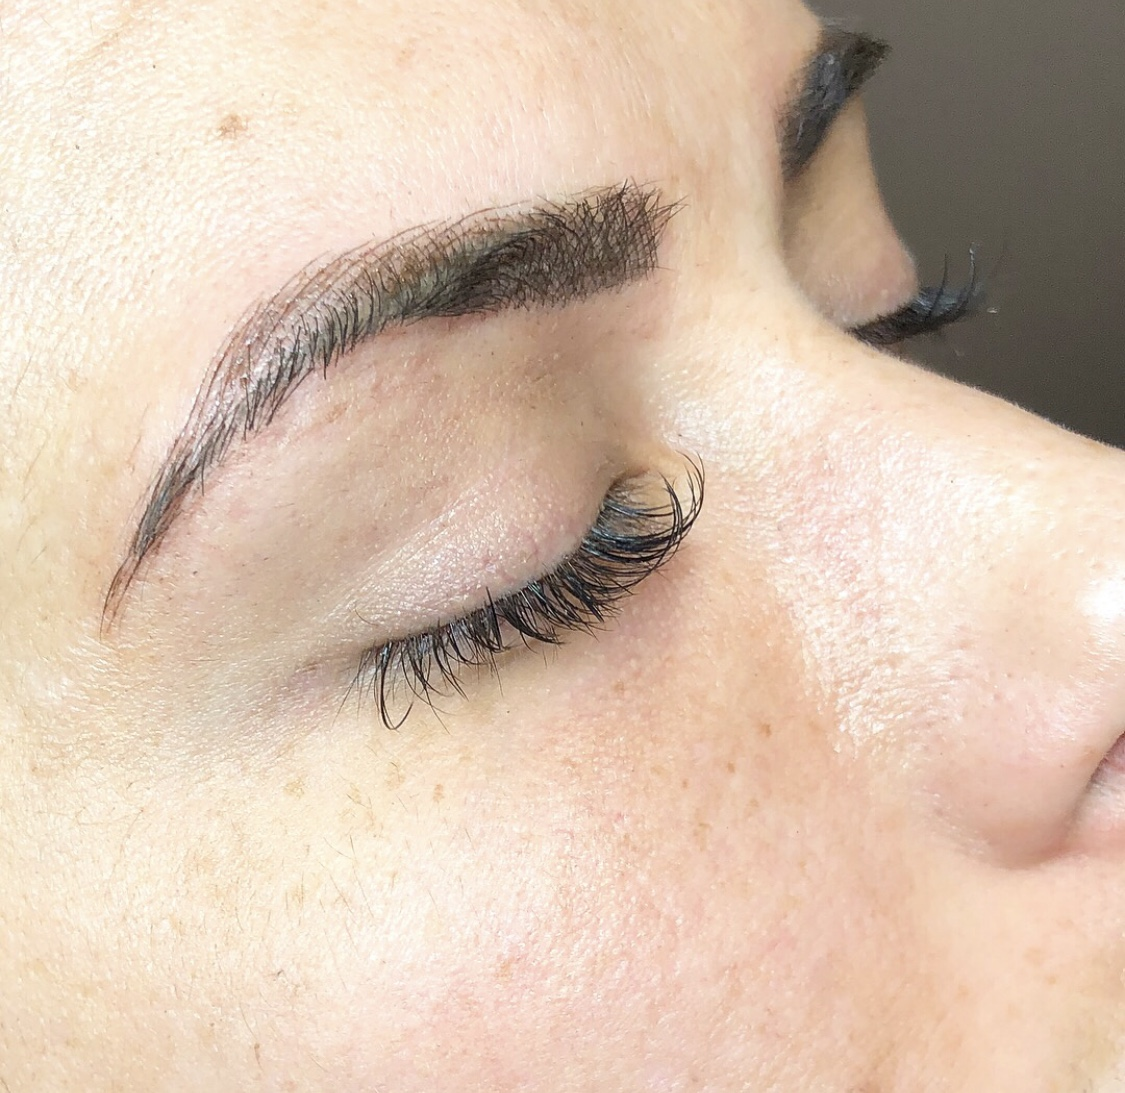 tulsa microbladed eyebrows, emily gemma microbladed eyebrows, microblading reviews, dallas microblading2